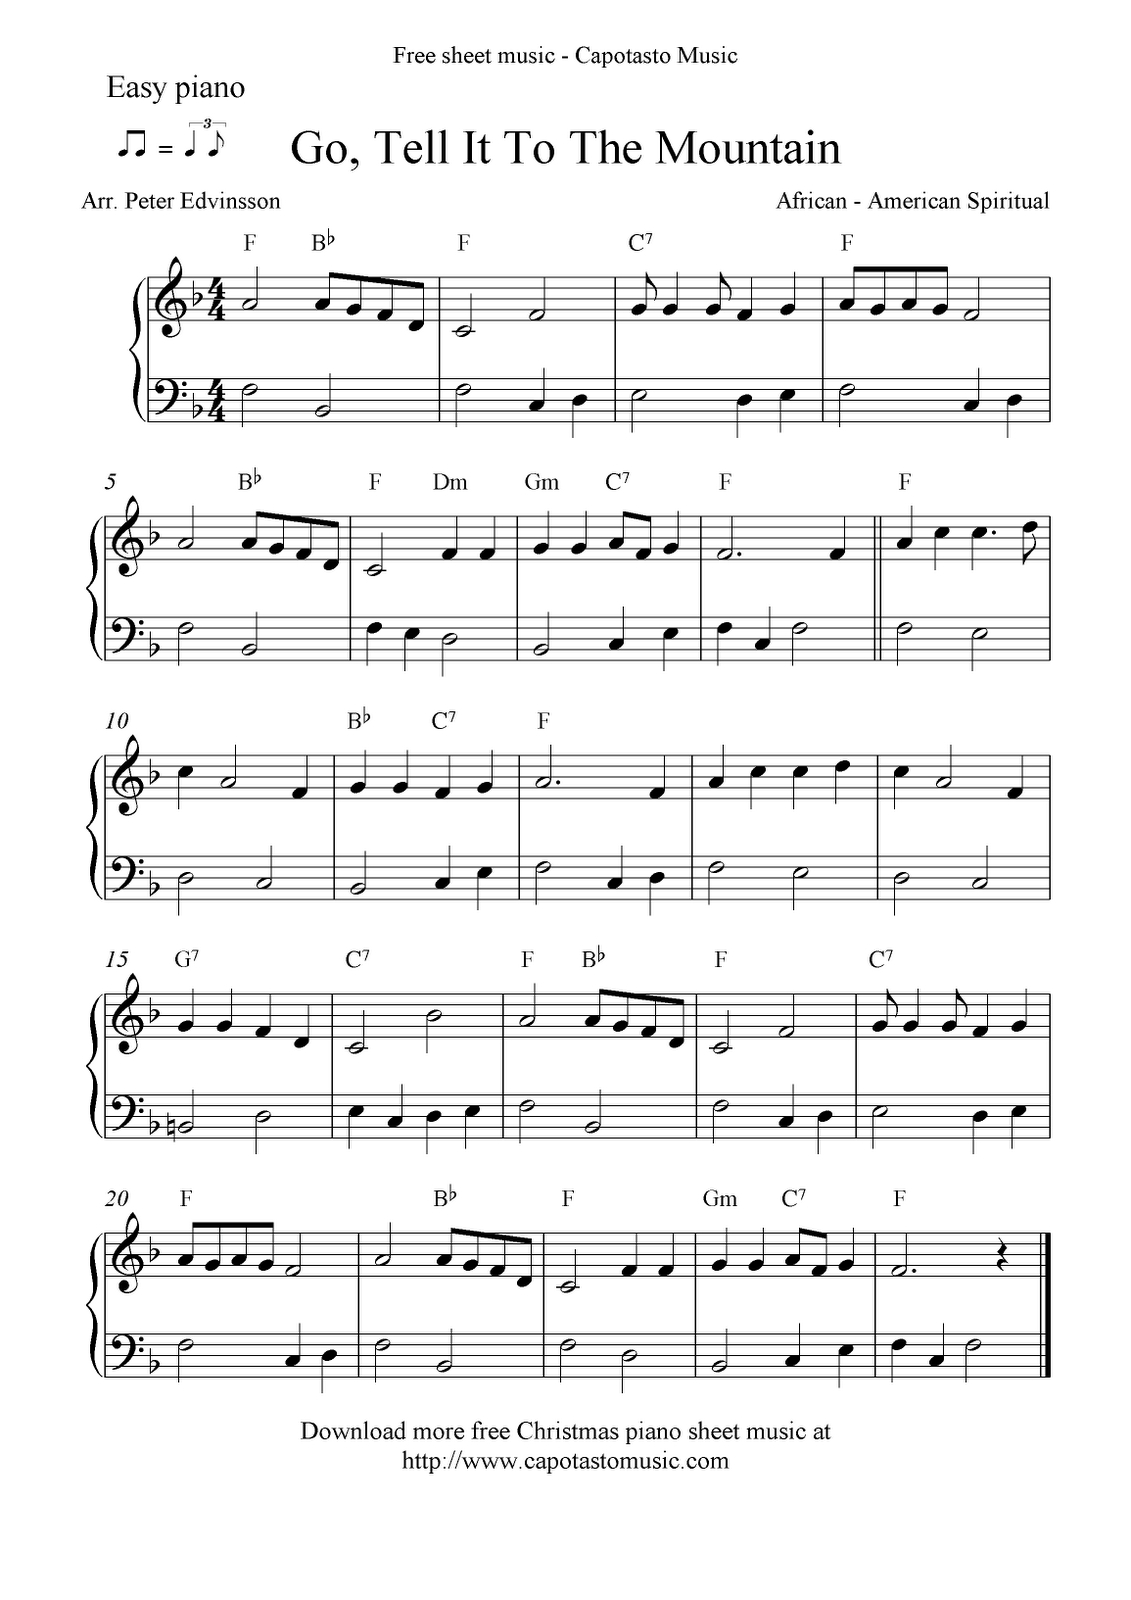 Free Printable Piano Sheet Music | Free Sheet Music Scores: Easy - Free Printable Christmas Sheet Music For Piano